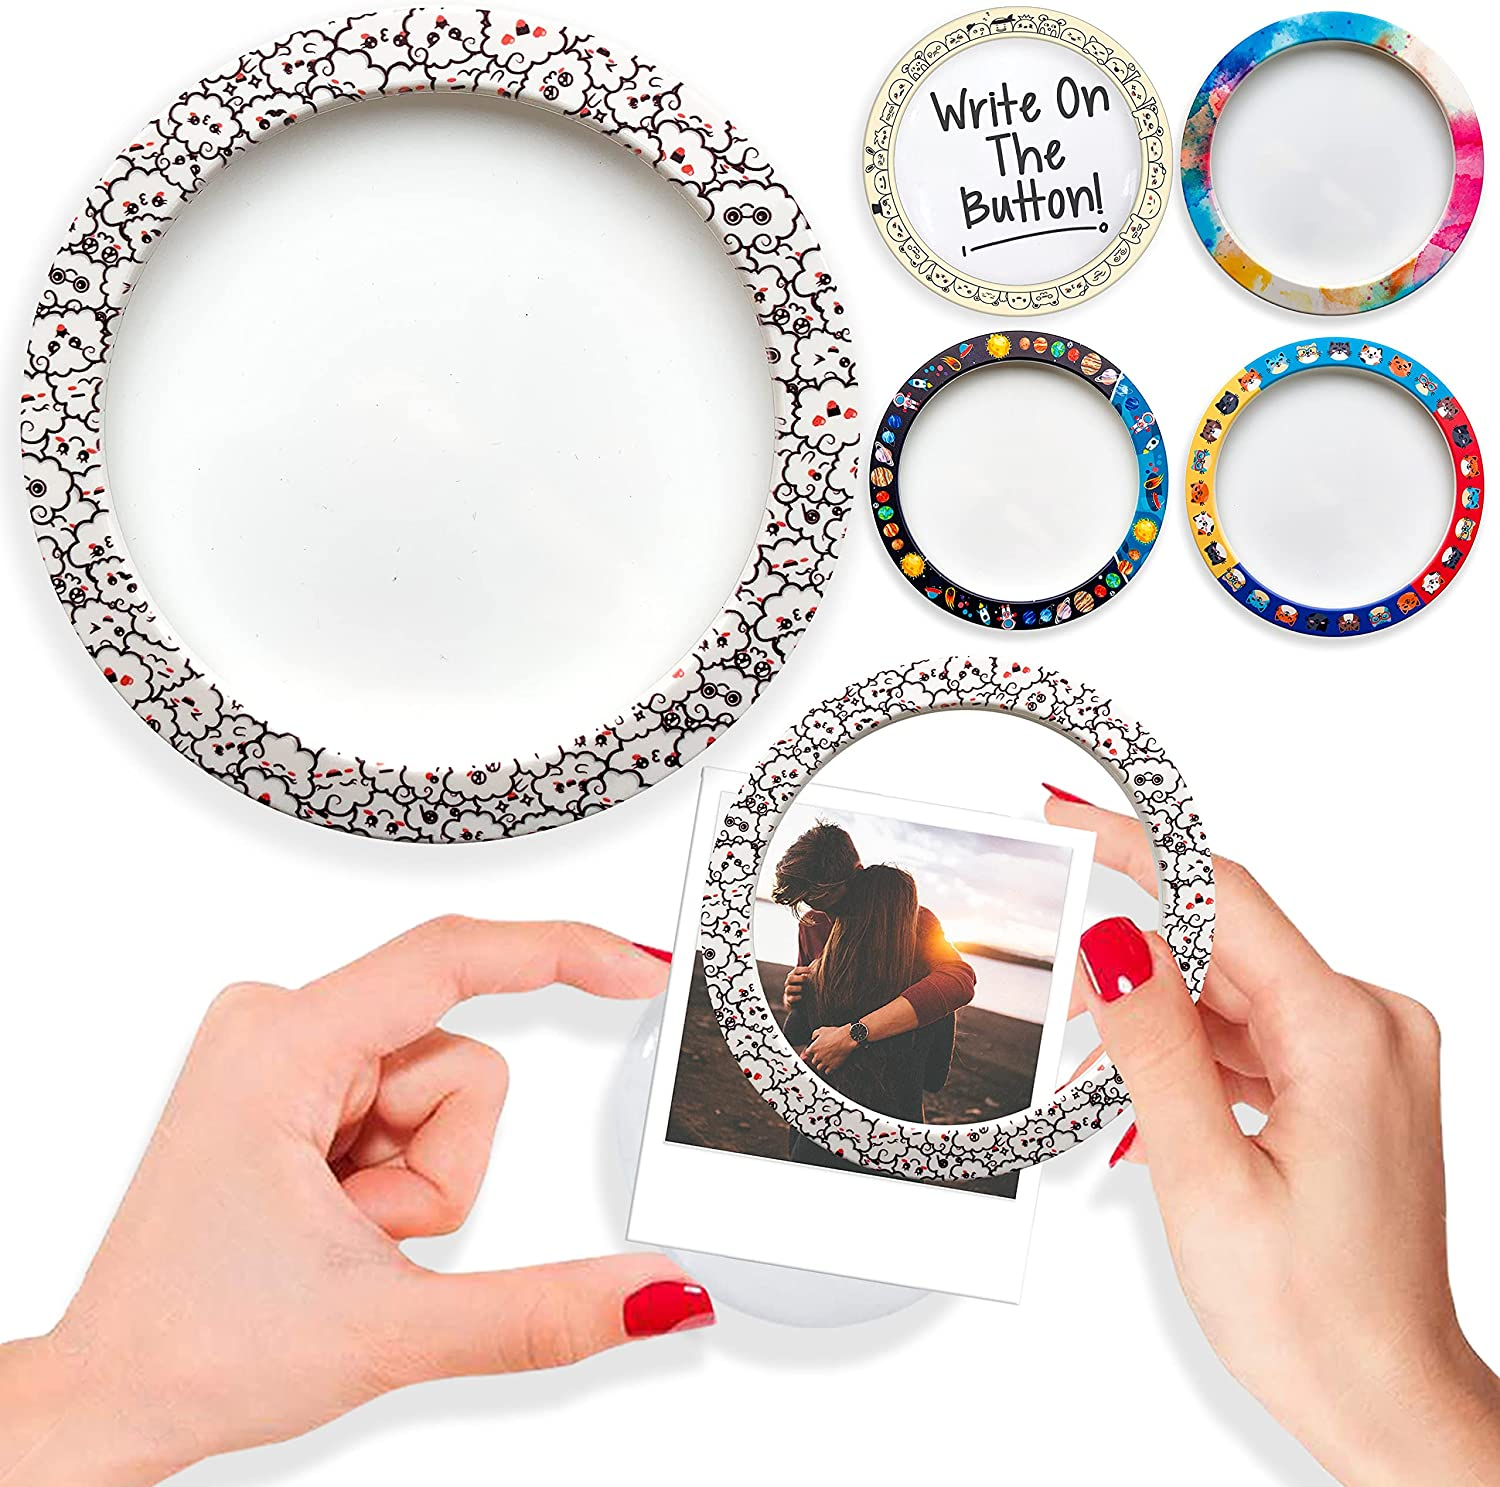 Picture Frame Fridge 67% OFF of fixed price Magnets Dry Whiteboard Erase Surface Offi excellence